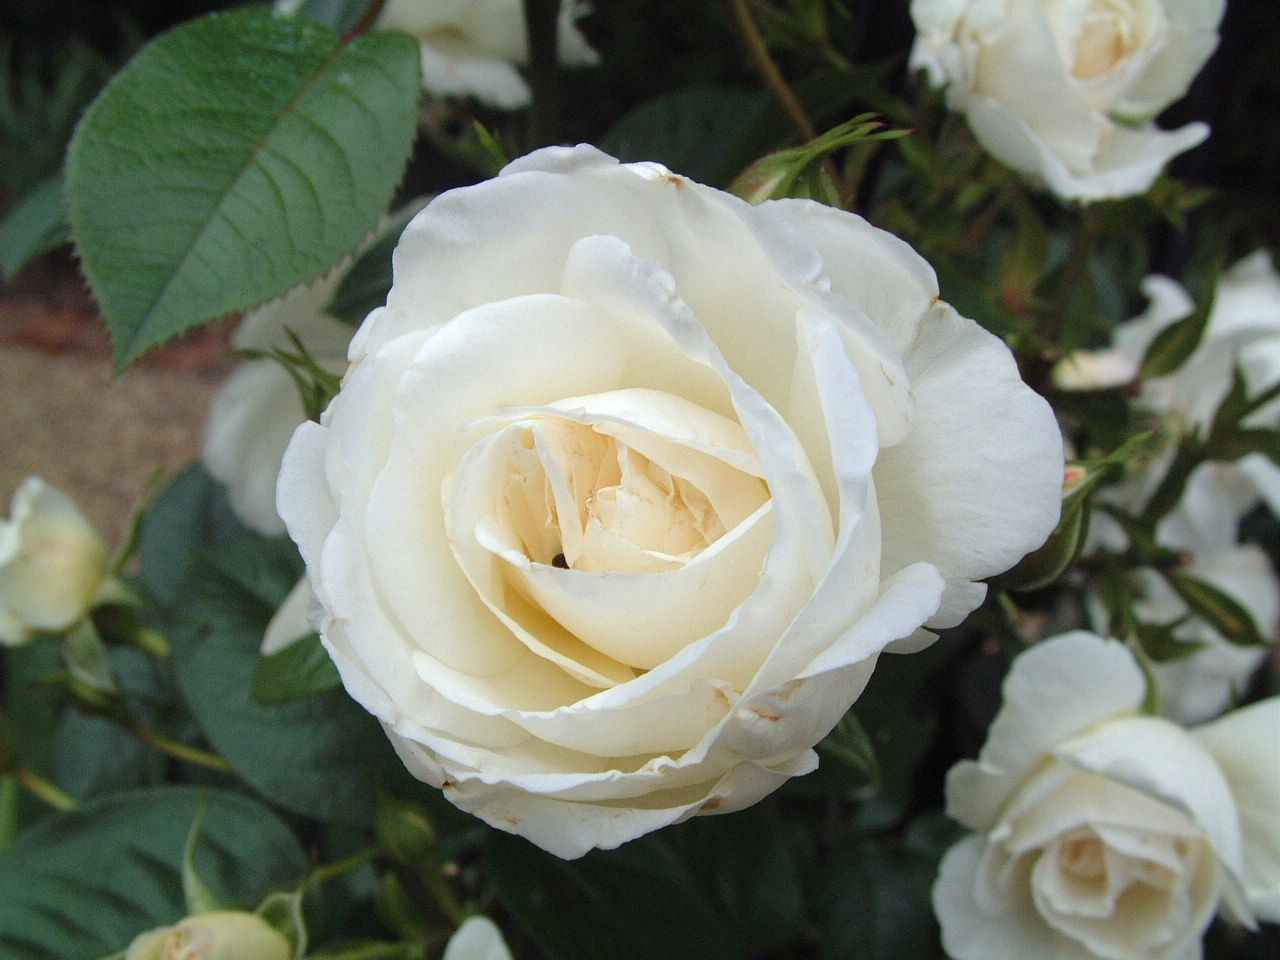 One White Rose perfume of a rose you can